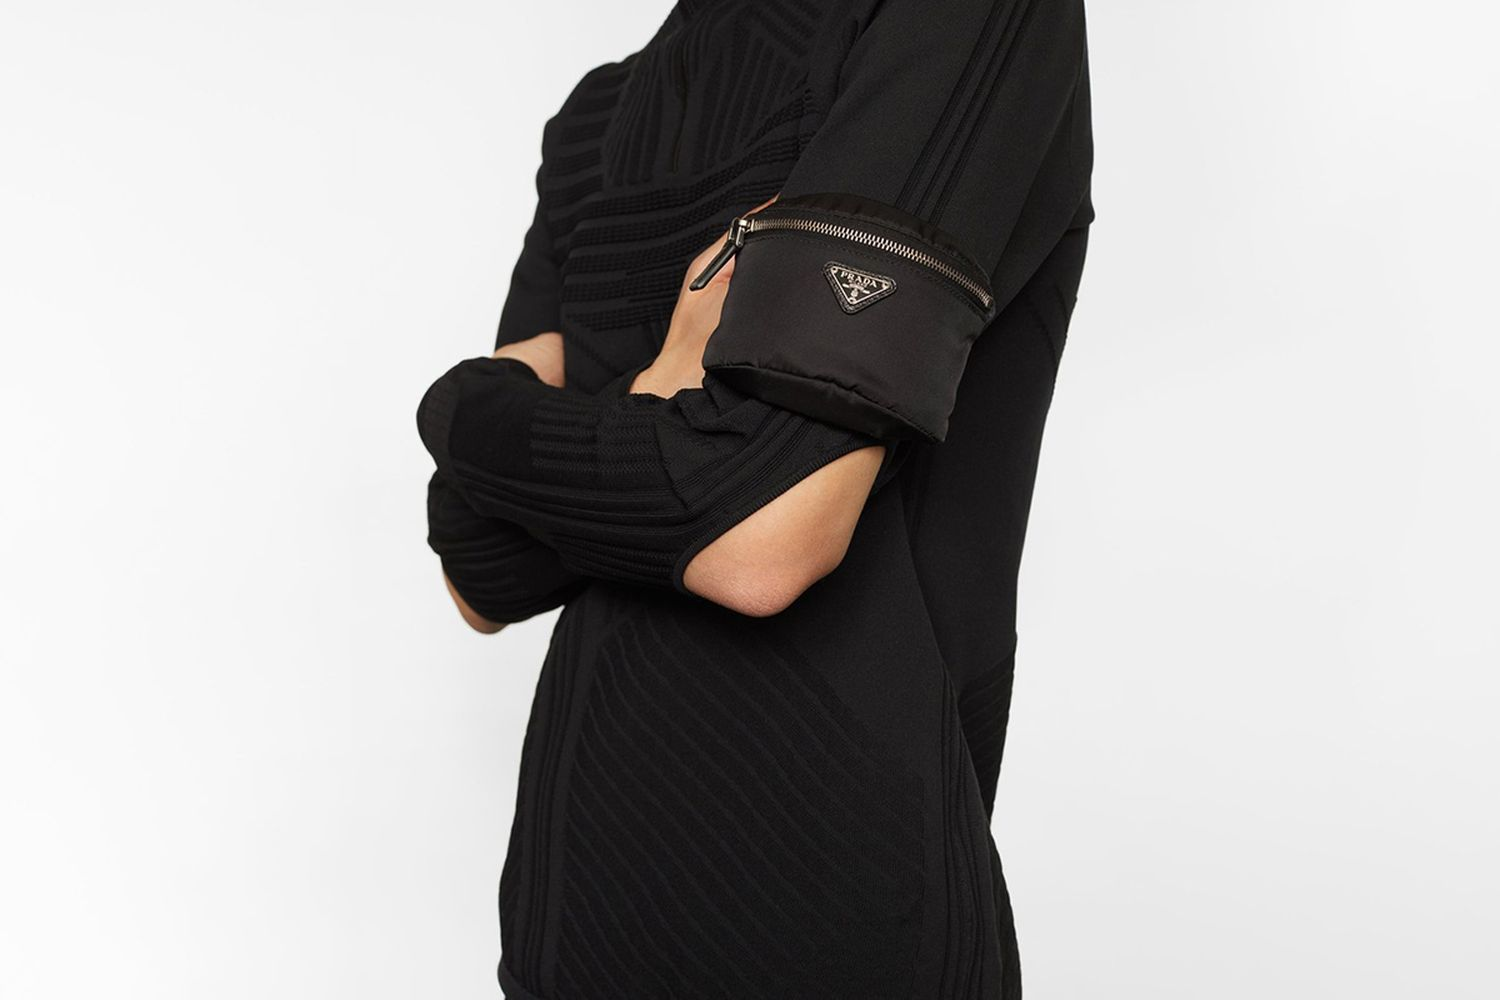 Armband Pouch